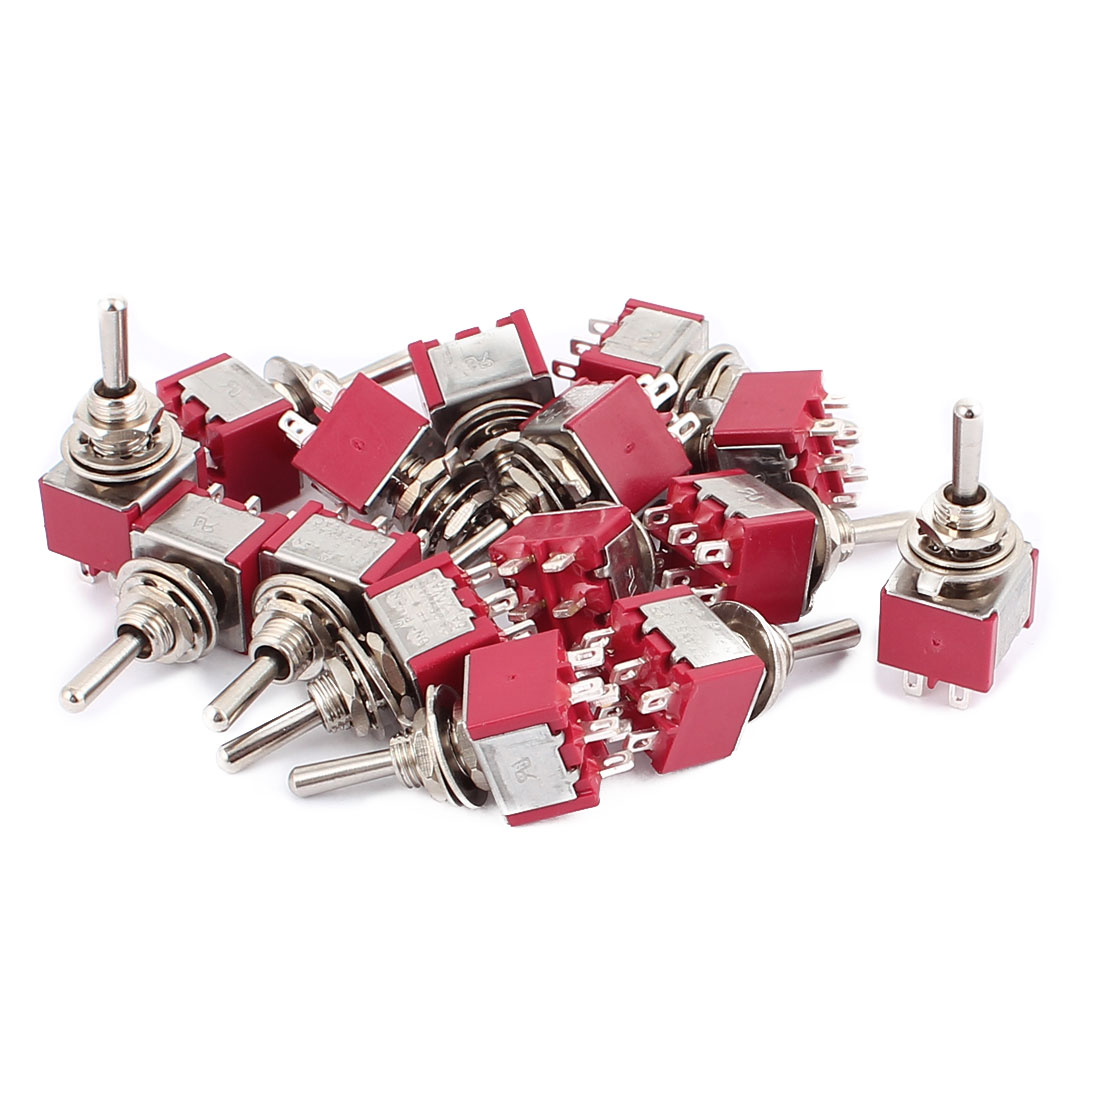 15Pcs 250VAC 2A 120VAC 5A 6 Terminals DPDT 3 Position ON/OFF/ON Momentary Toggle Switch